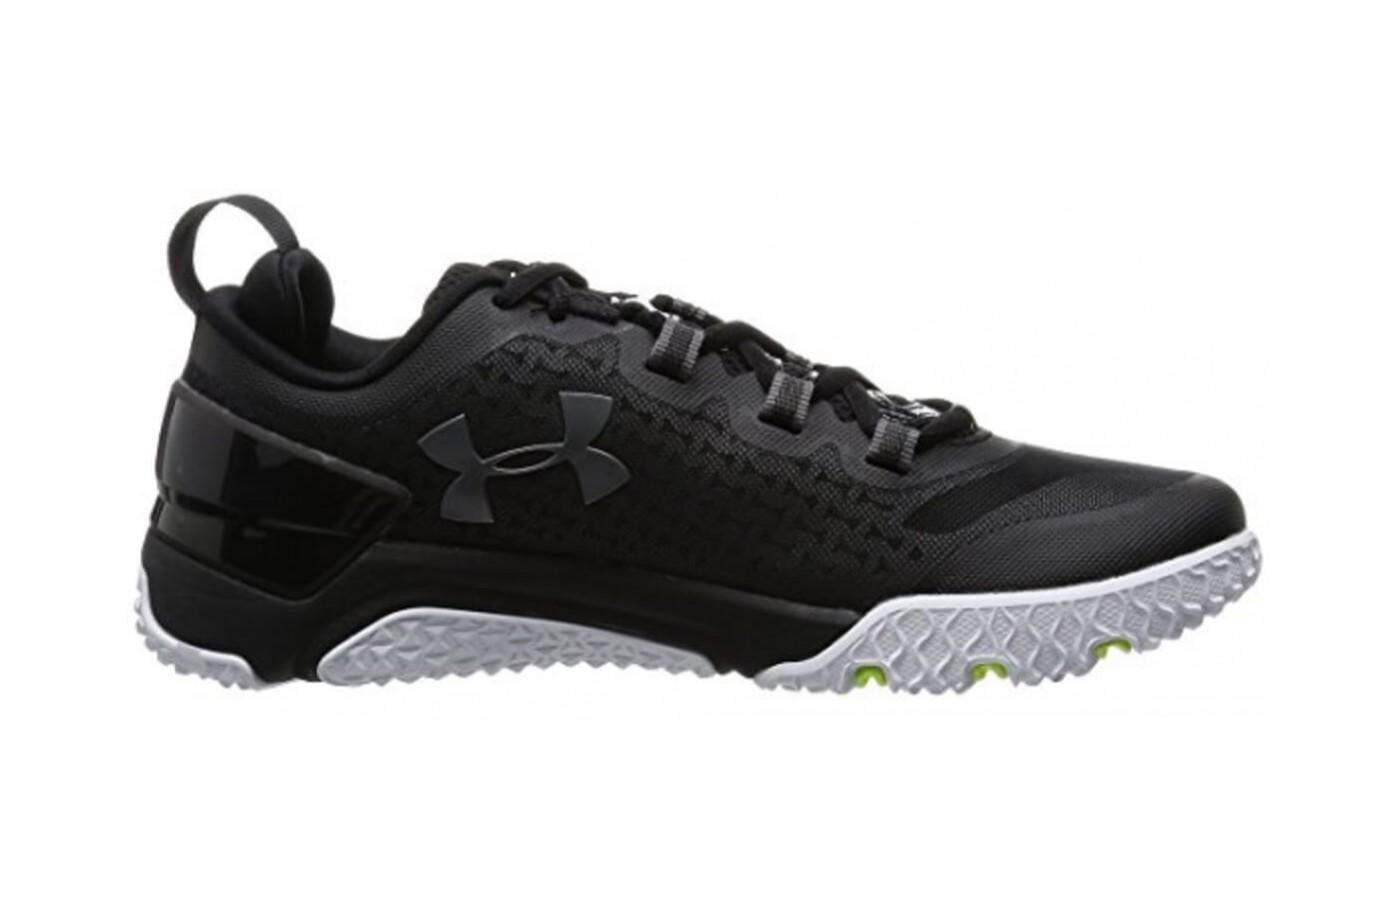 Under Armour Charged Ultimate right